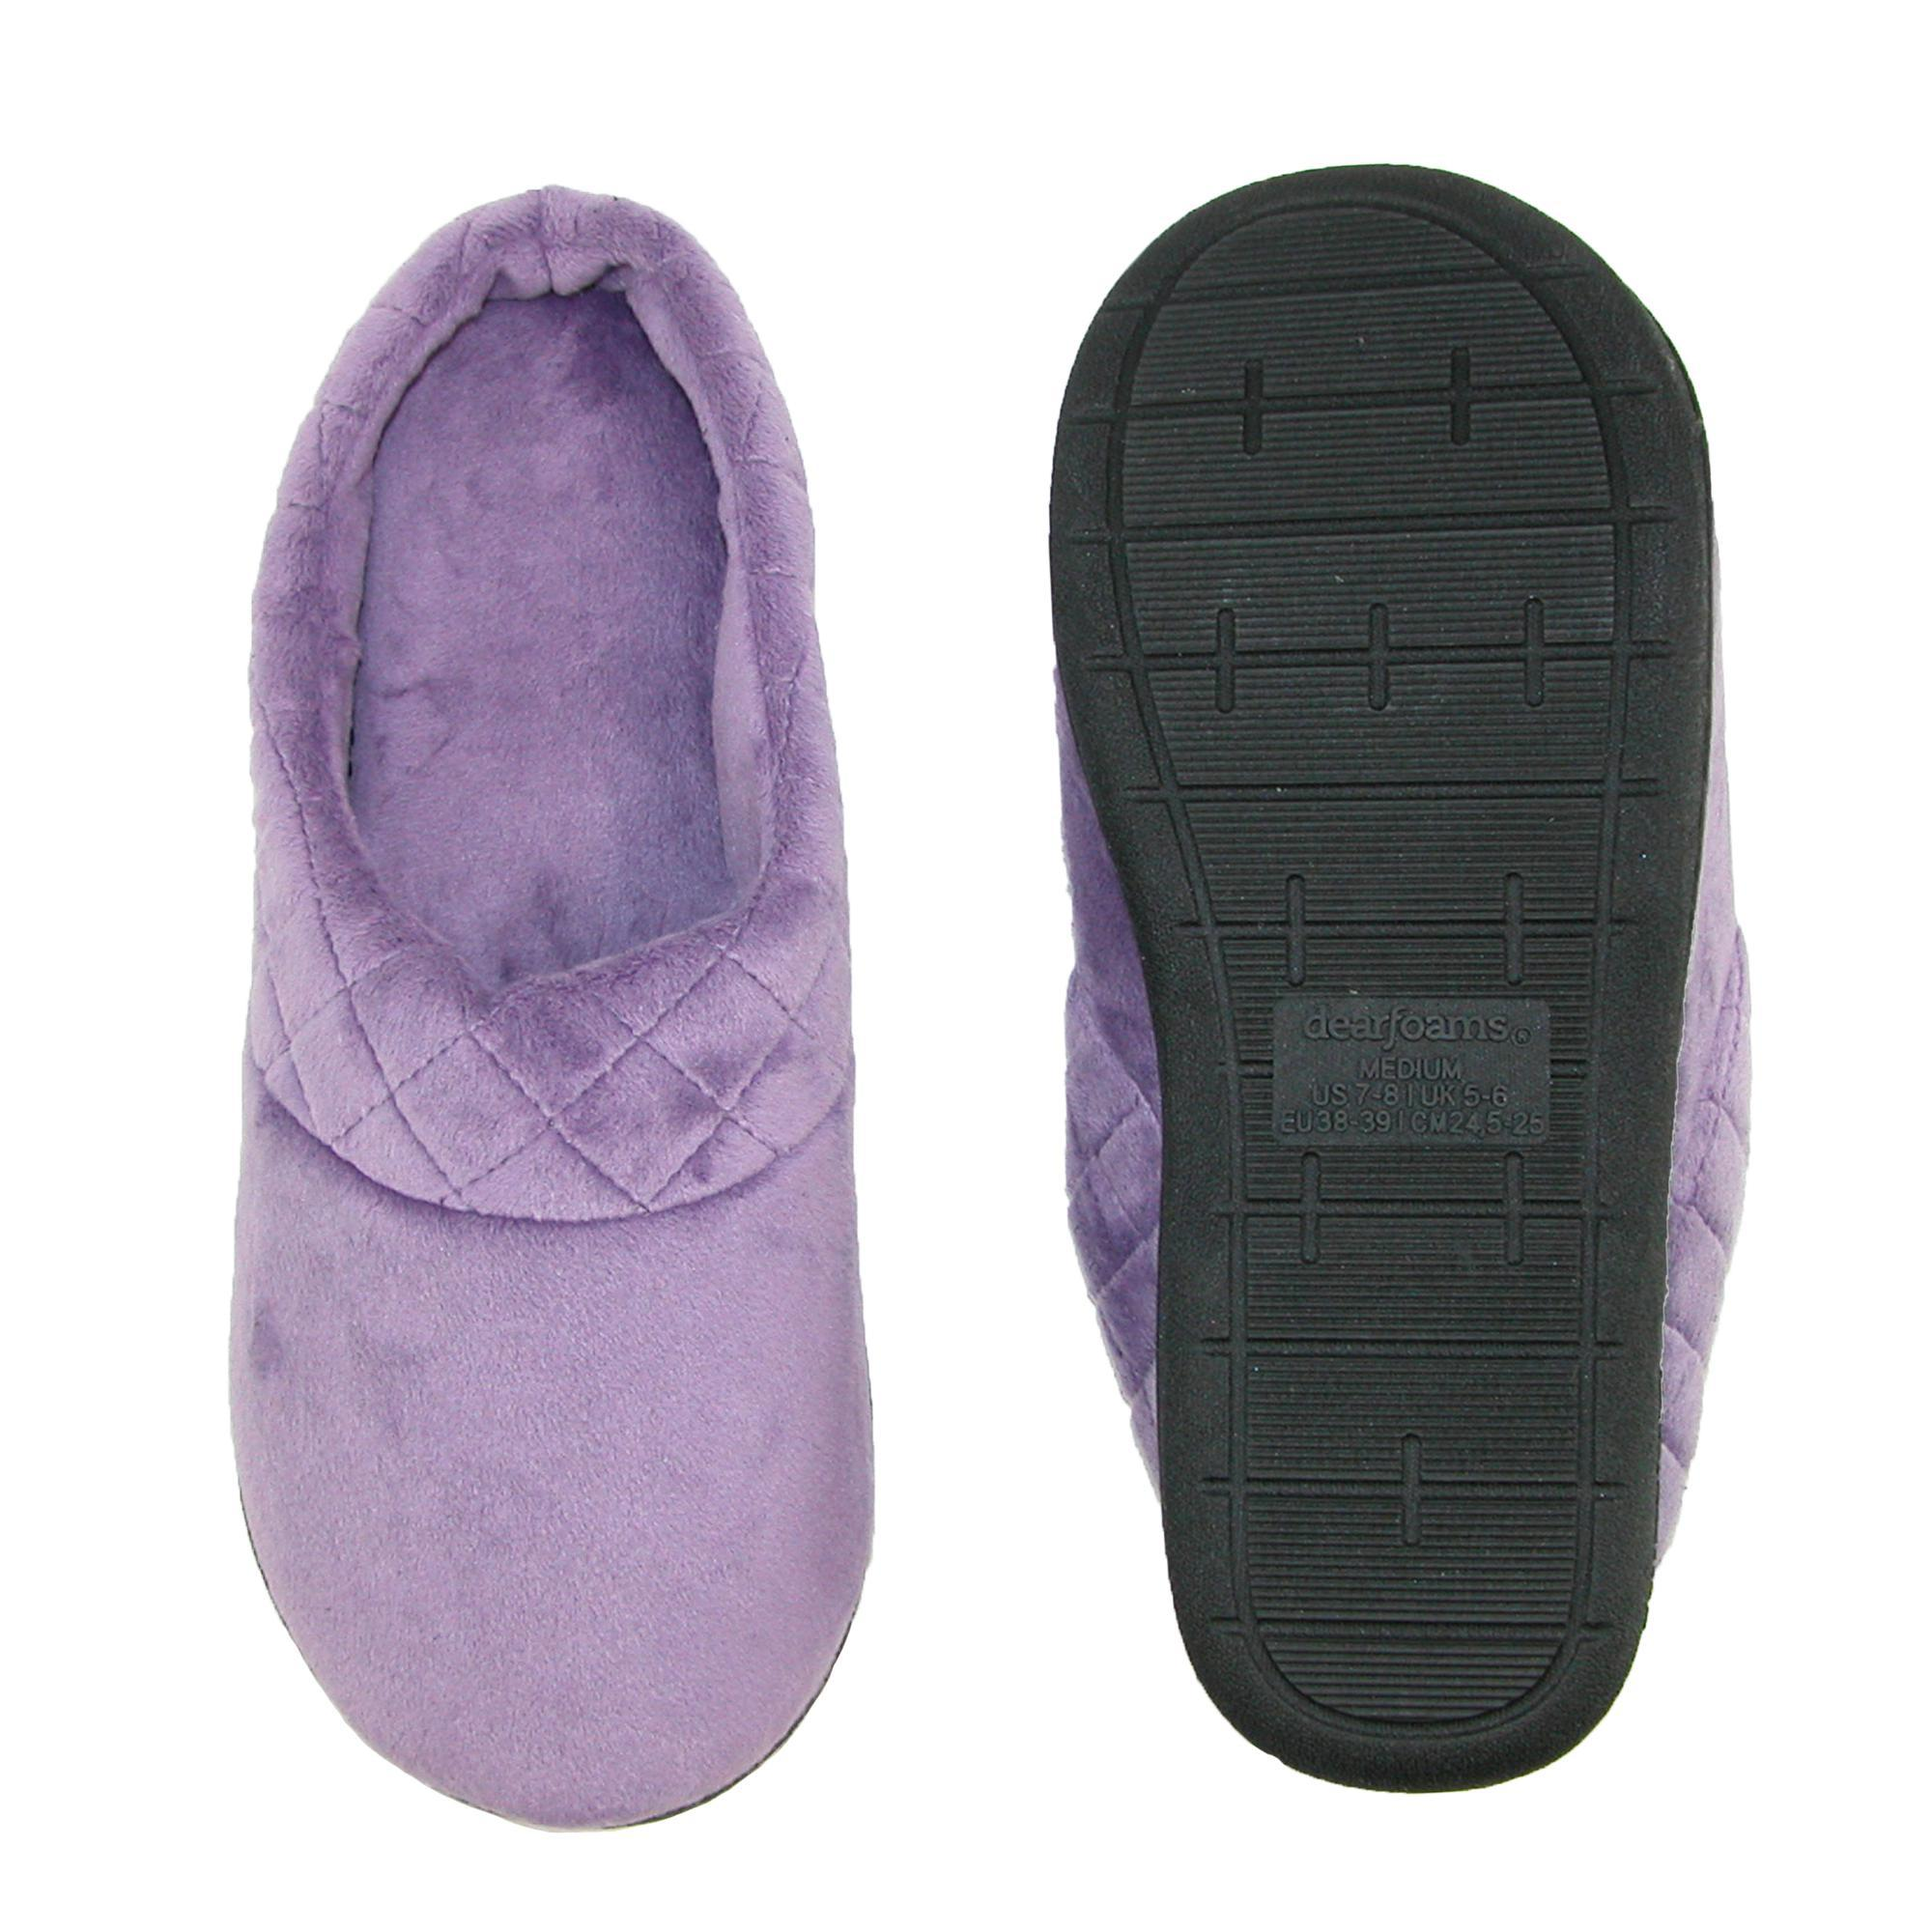 New-Dearfoams-Women-039-s-Microfiber-Velour-Clog-Slipper-with-Quilt-Detail thumbnail 20